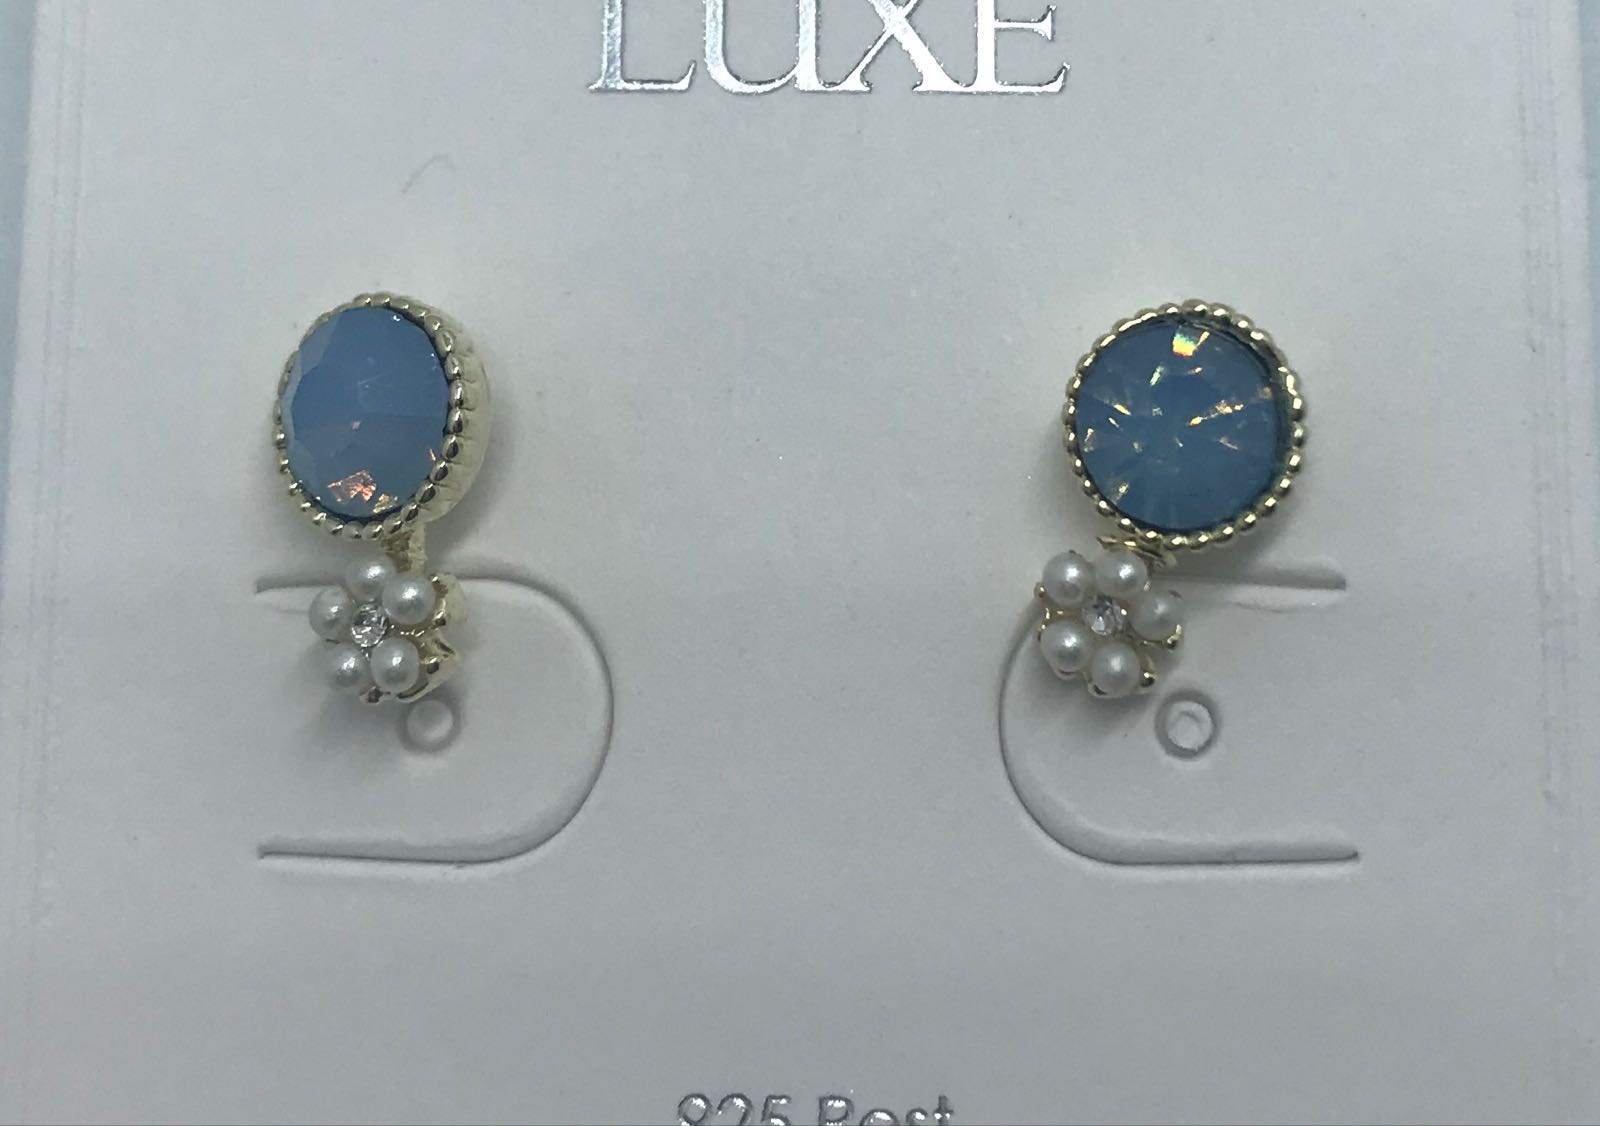 Life Charms blue earrings with daisy pearl dr